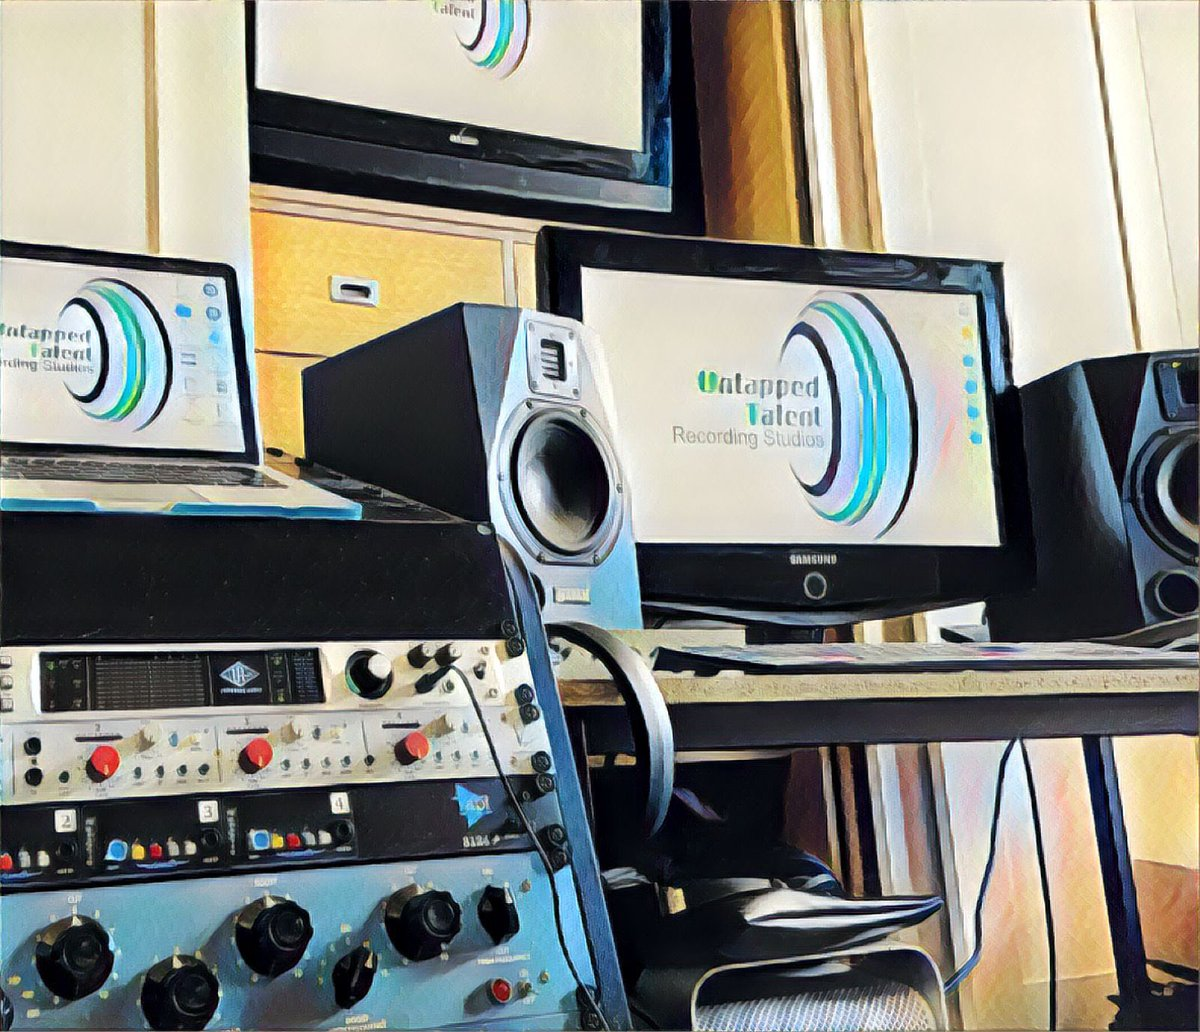 If you have music in need of editing, mixing or mastering then get in touch. We are still working remotely on projects even though the country is in lockdown, but that doesn't mean the music has to stop. In the meantime we hope everyone is staying safe and well #mixing #mastering pic.twitter.com/s2SGm7V6NN